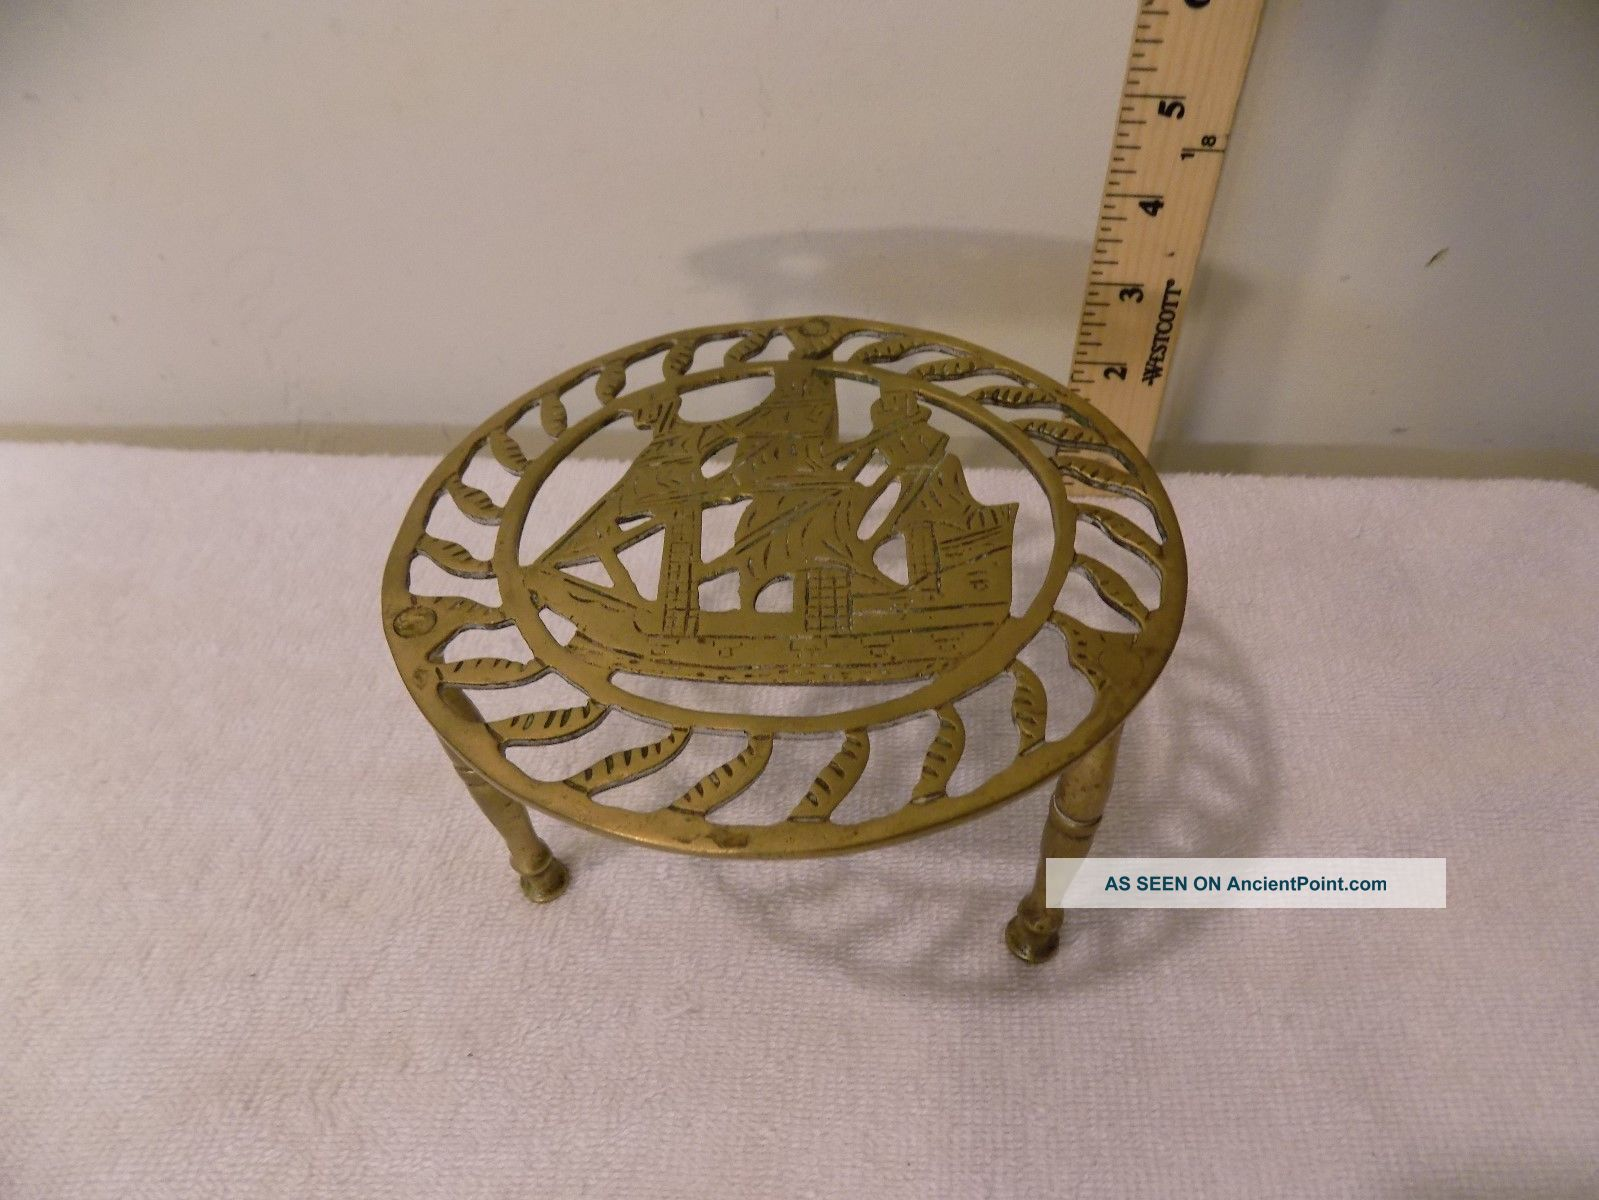 Antique Brass Fireplace Hearth Pot Kettle Trivet Stand,  Nautical Sailing Ship Trivets photo